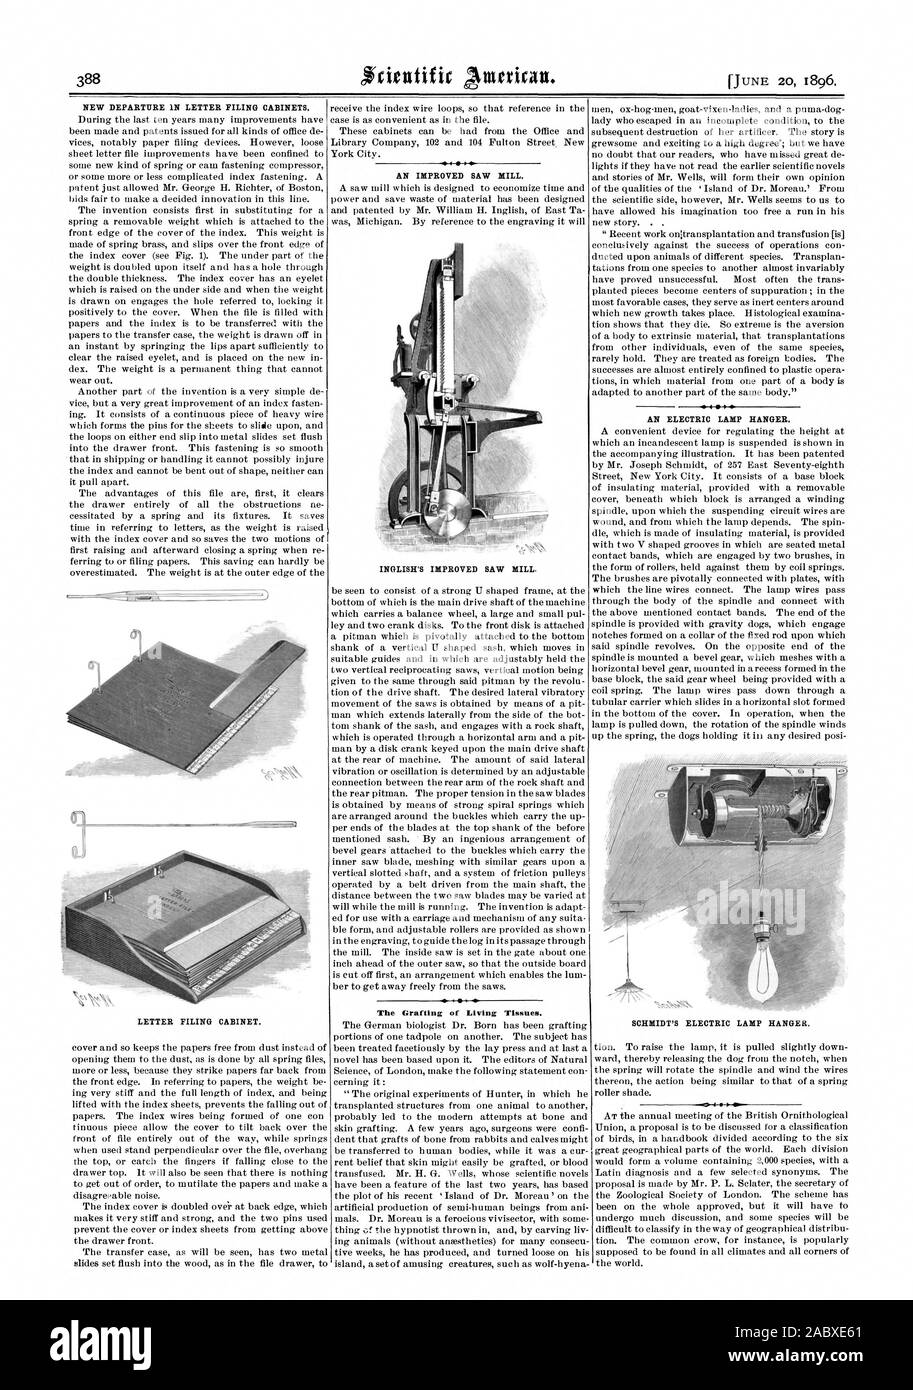 NEW DEPARTURE IN LETTER FILING CABINETS. AN IMPROVED SAW MILL. INGLISH'S IMPROVED SAW MILL. The Grafting of Living Tissues. 1  AN ELECTRIC LAMP HANGER. SCHMIDT'S ELECTRIC LAMP HANGER. LETTER FILING CABINET., scientific american, 1896-06-20 Stock Photo